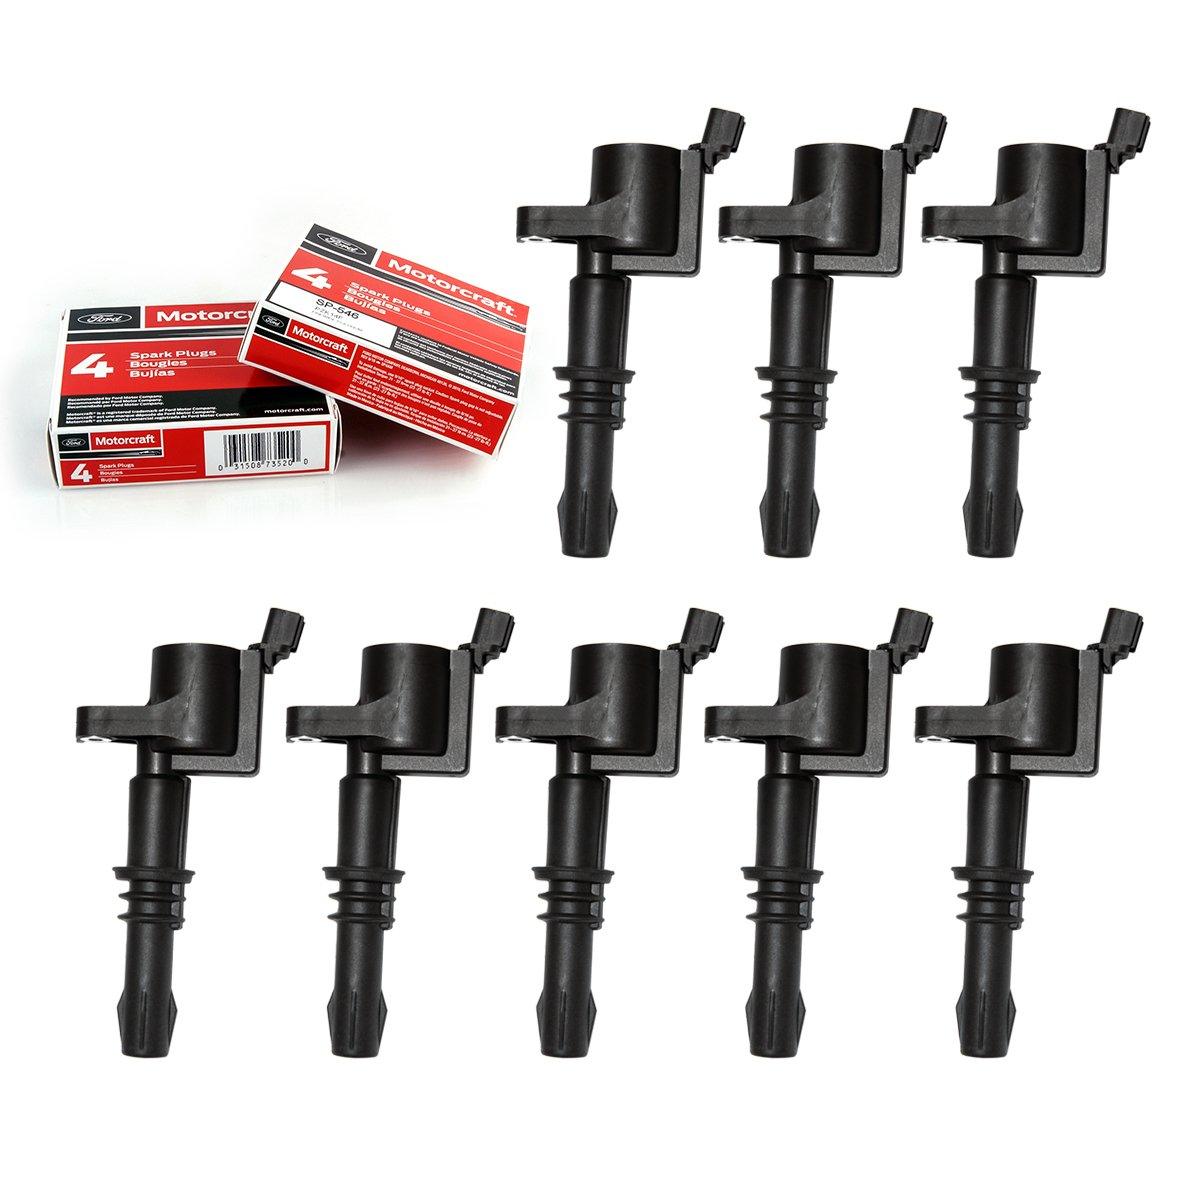 Combo Pack of Straight Boot Ignition Coils for Ford Lincoln Mercury V8 V10 4.6l 5.4l 6.8l Compatible with 3L3E12A366CA 3L3Z12029BA 3L3U12A366BB E508 (Set of 8) King Auto Parts